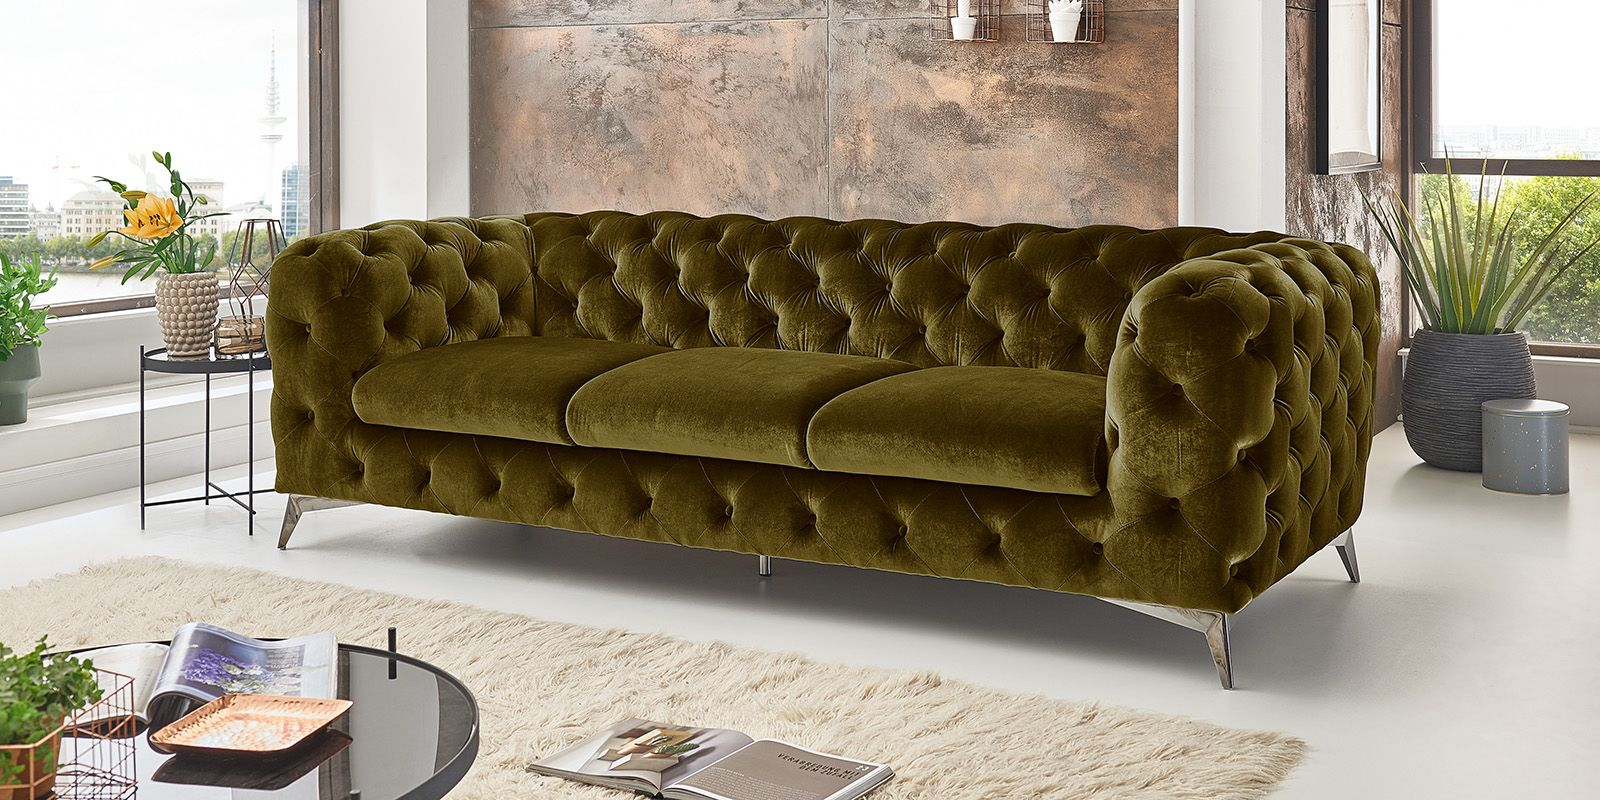 3 Sitzer Chesterfield Sofa Big Emma Samt Chesterfield Sofa Sofa